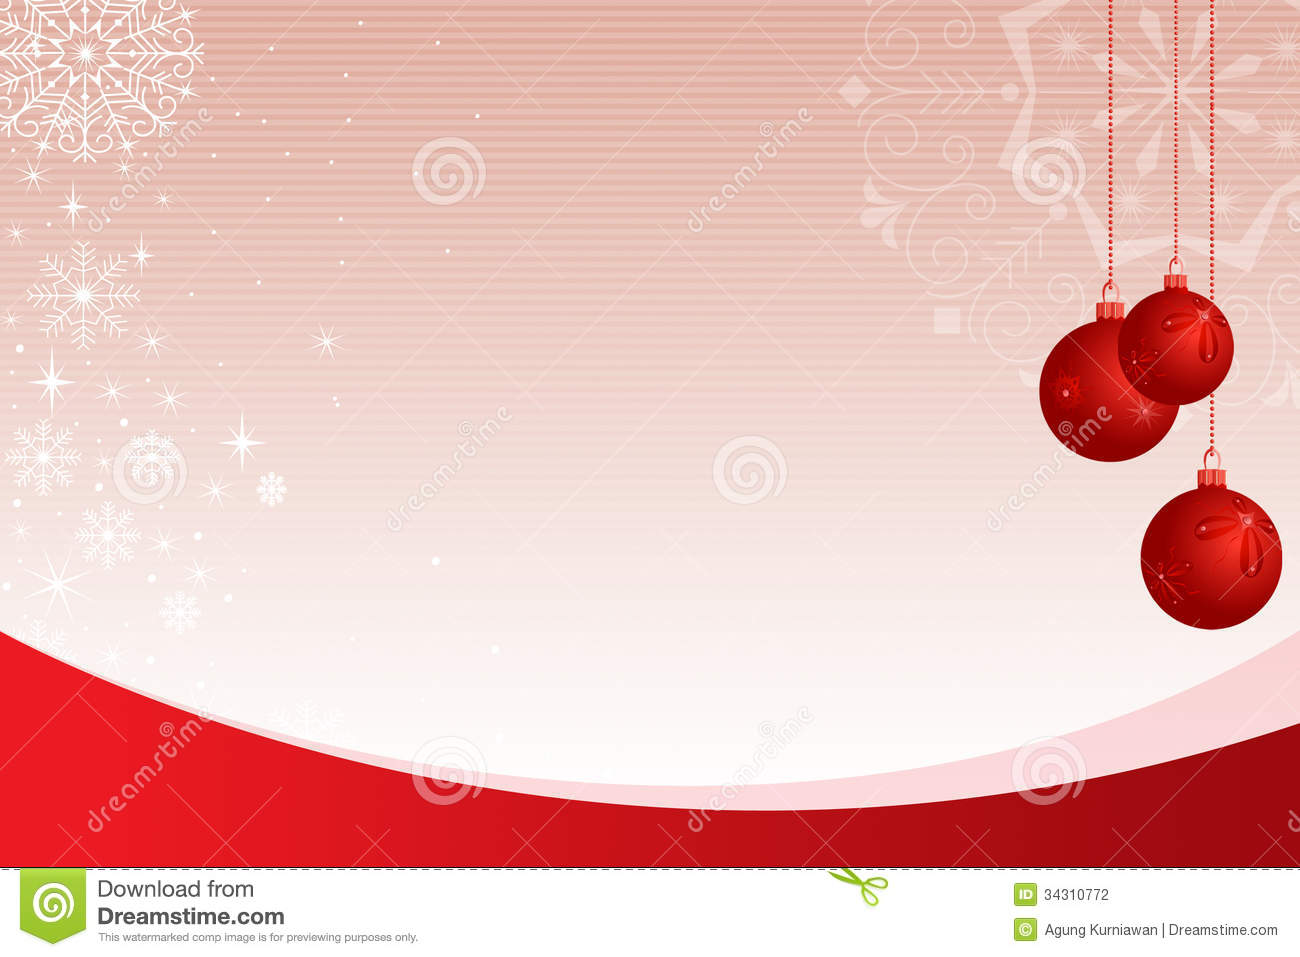 birthday card background design hd ; ornamental-background-red-bubble-can-be-used-many-purpose-example-greeting-card-invitation-card-christmas-card-birthday-34310772